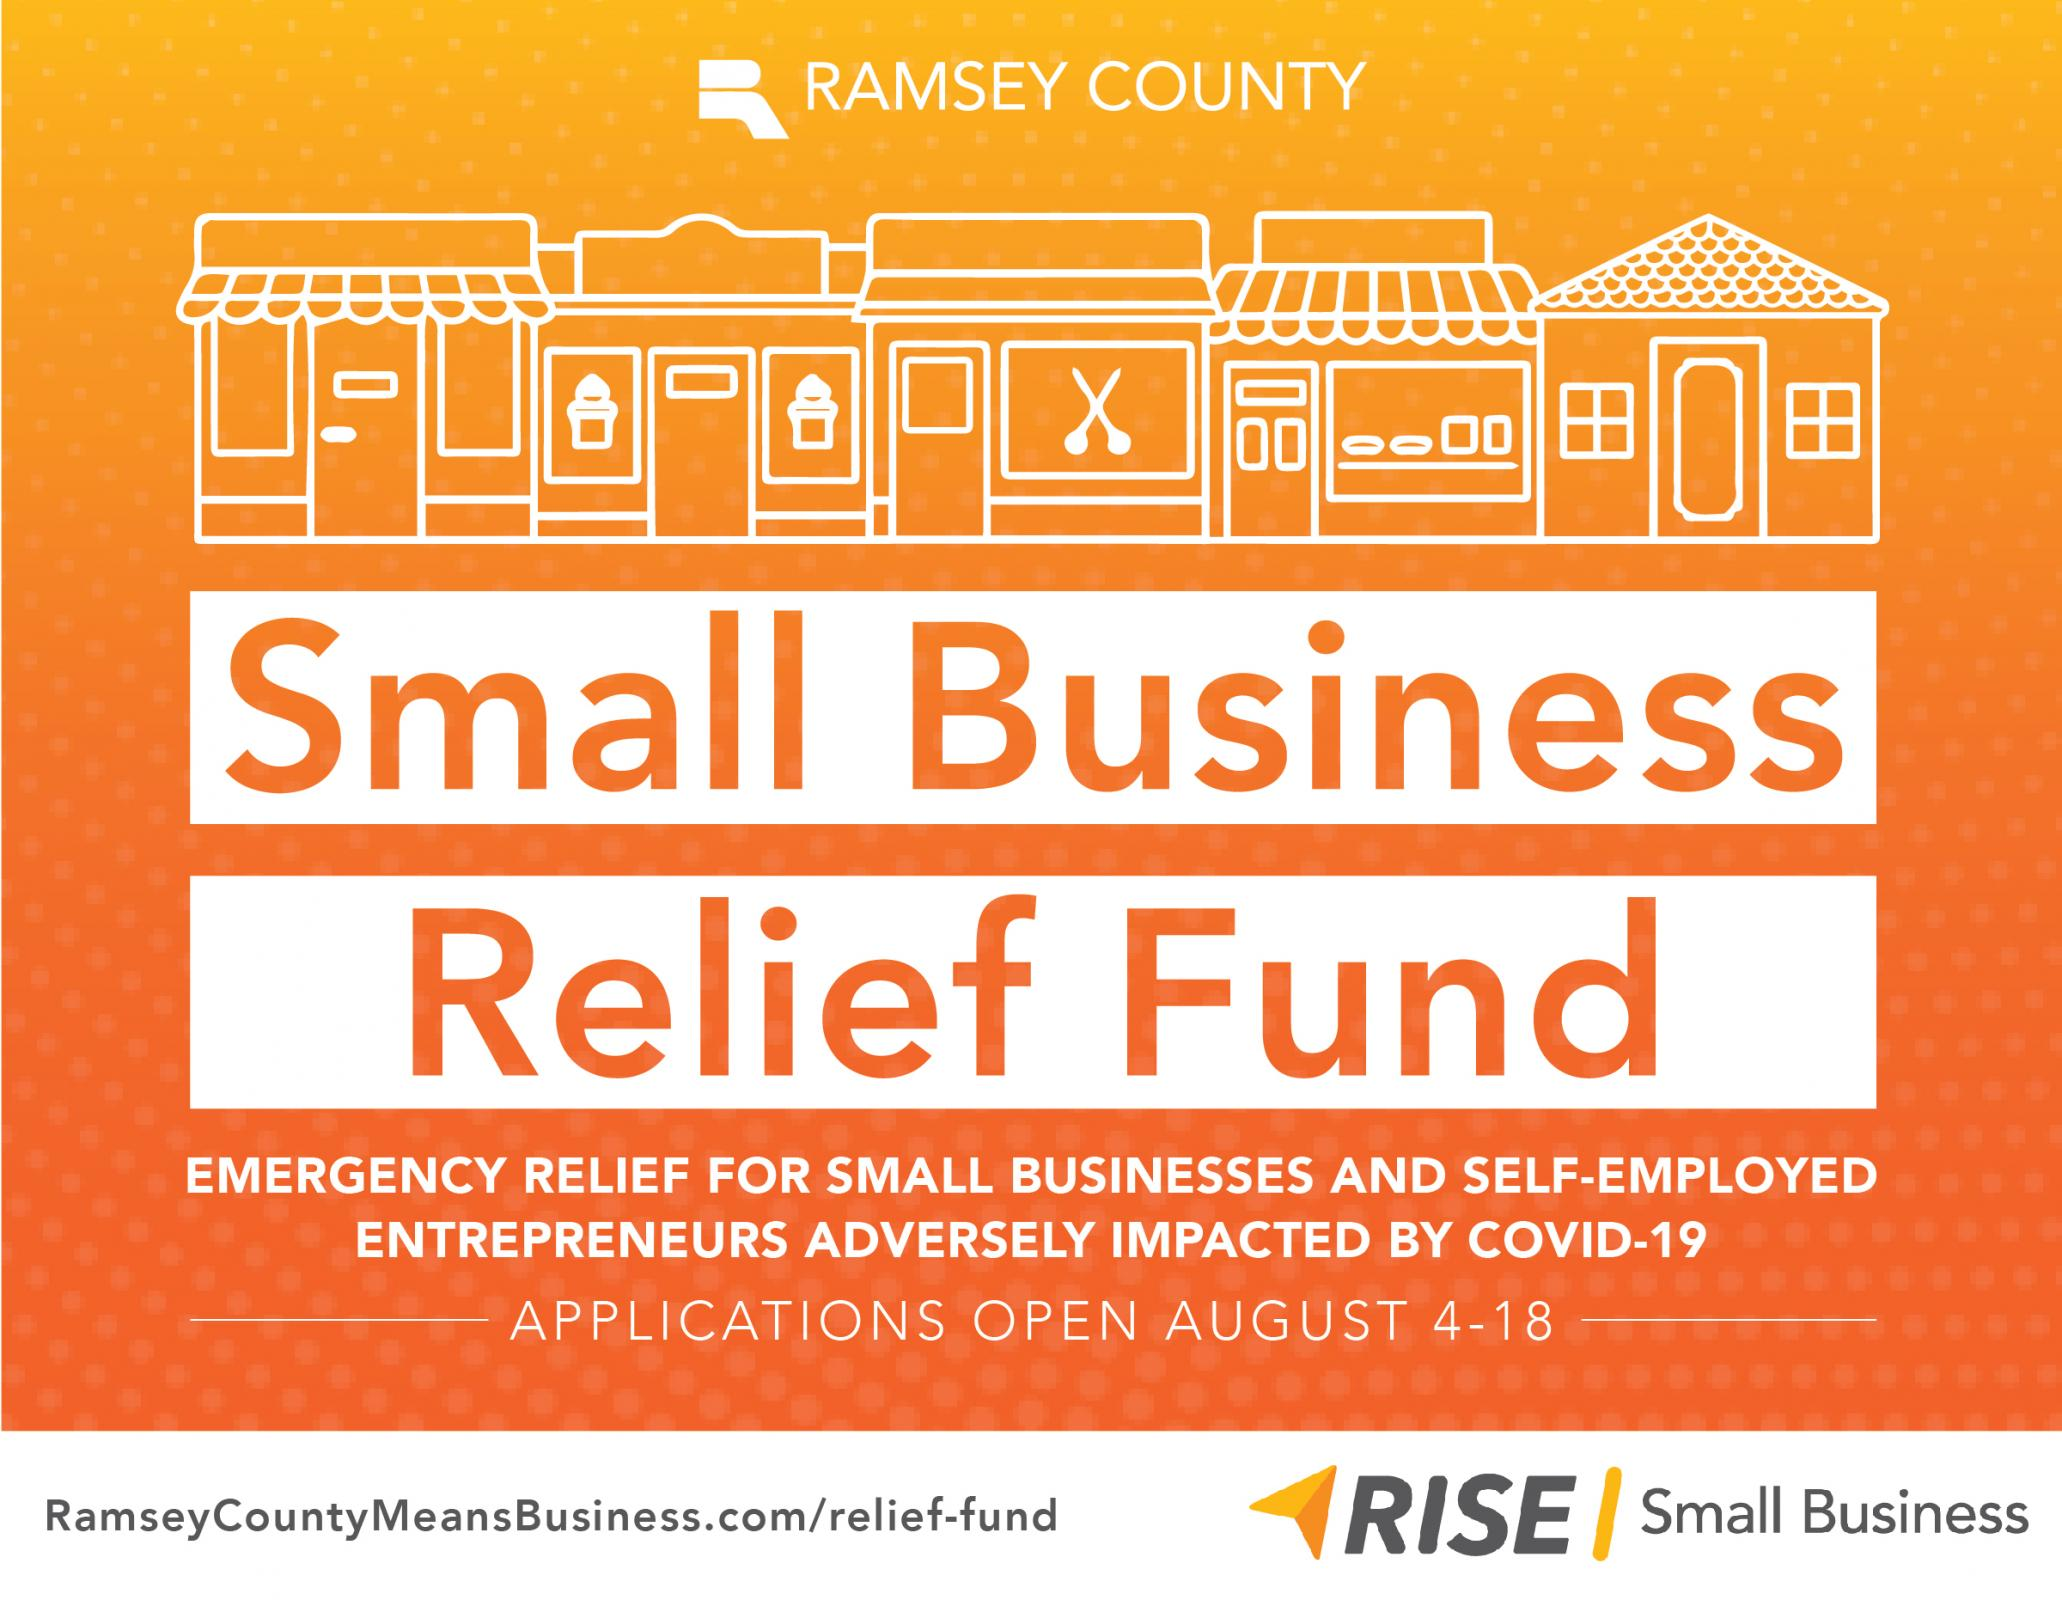 Applications open Aug. 4-18 for Small Business Relief Fund grants Photo